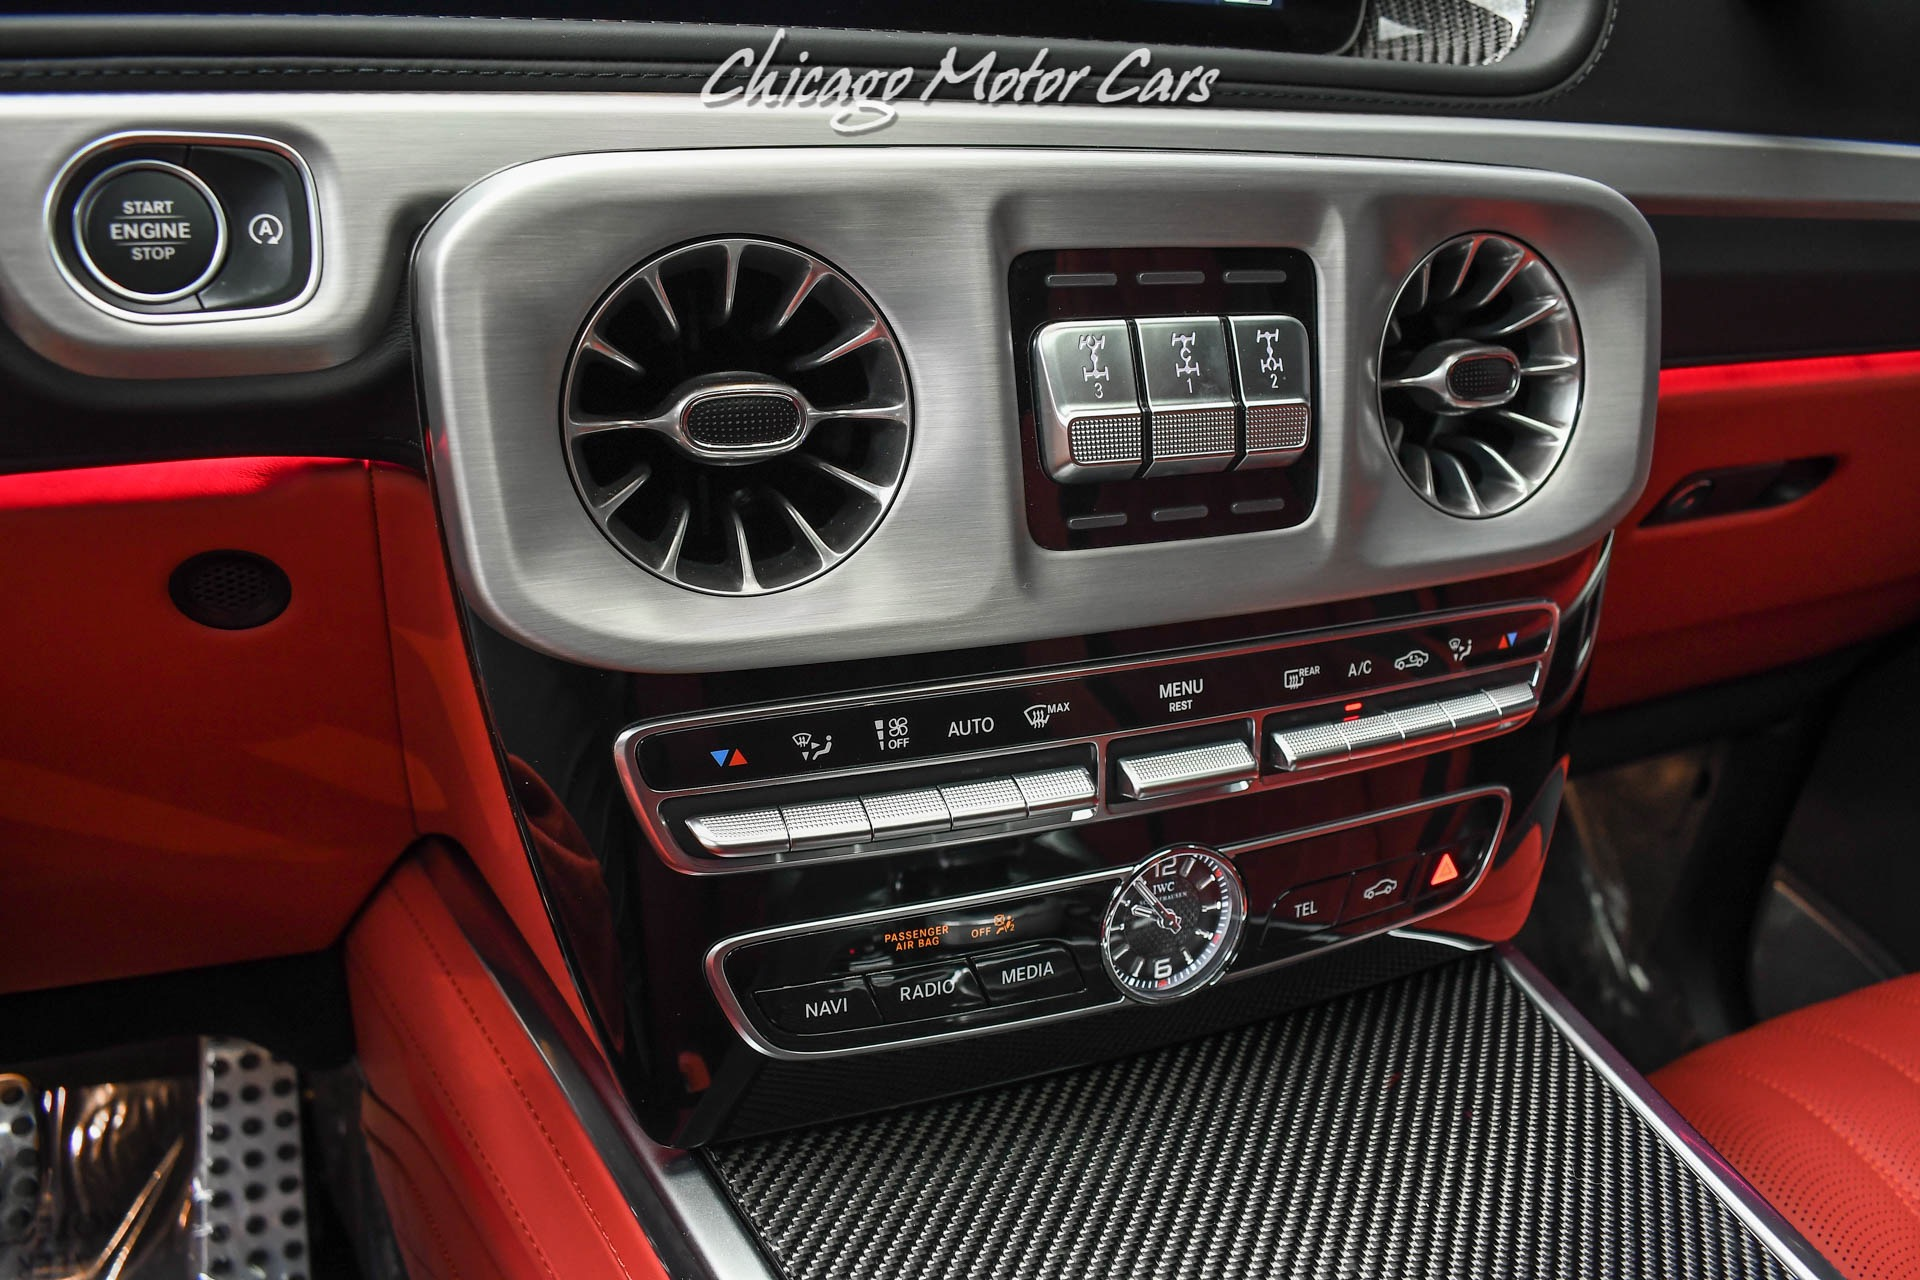 Used-2021-Mercedes-Benz-G63-AMG-SUV-Factory-Matte-Black-Red-Interior-Carbon-Fiber-Exclusive-Pack-LOADED